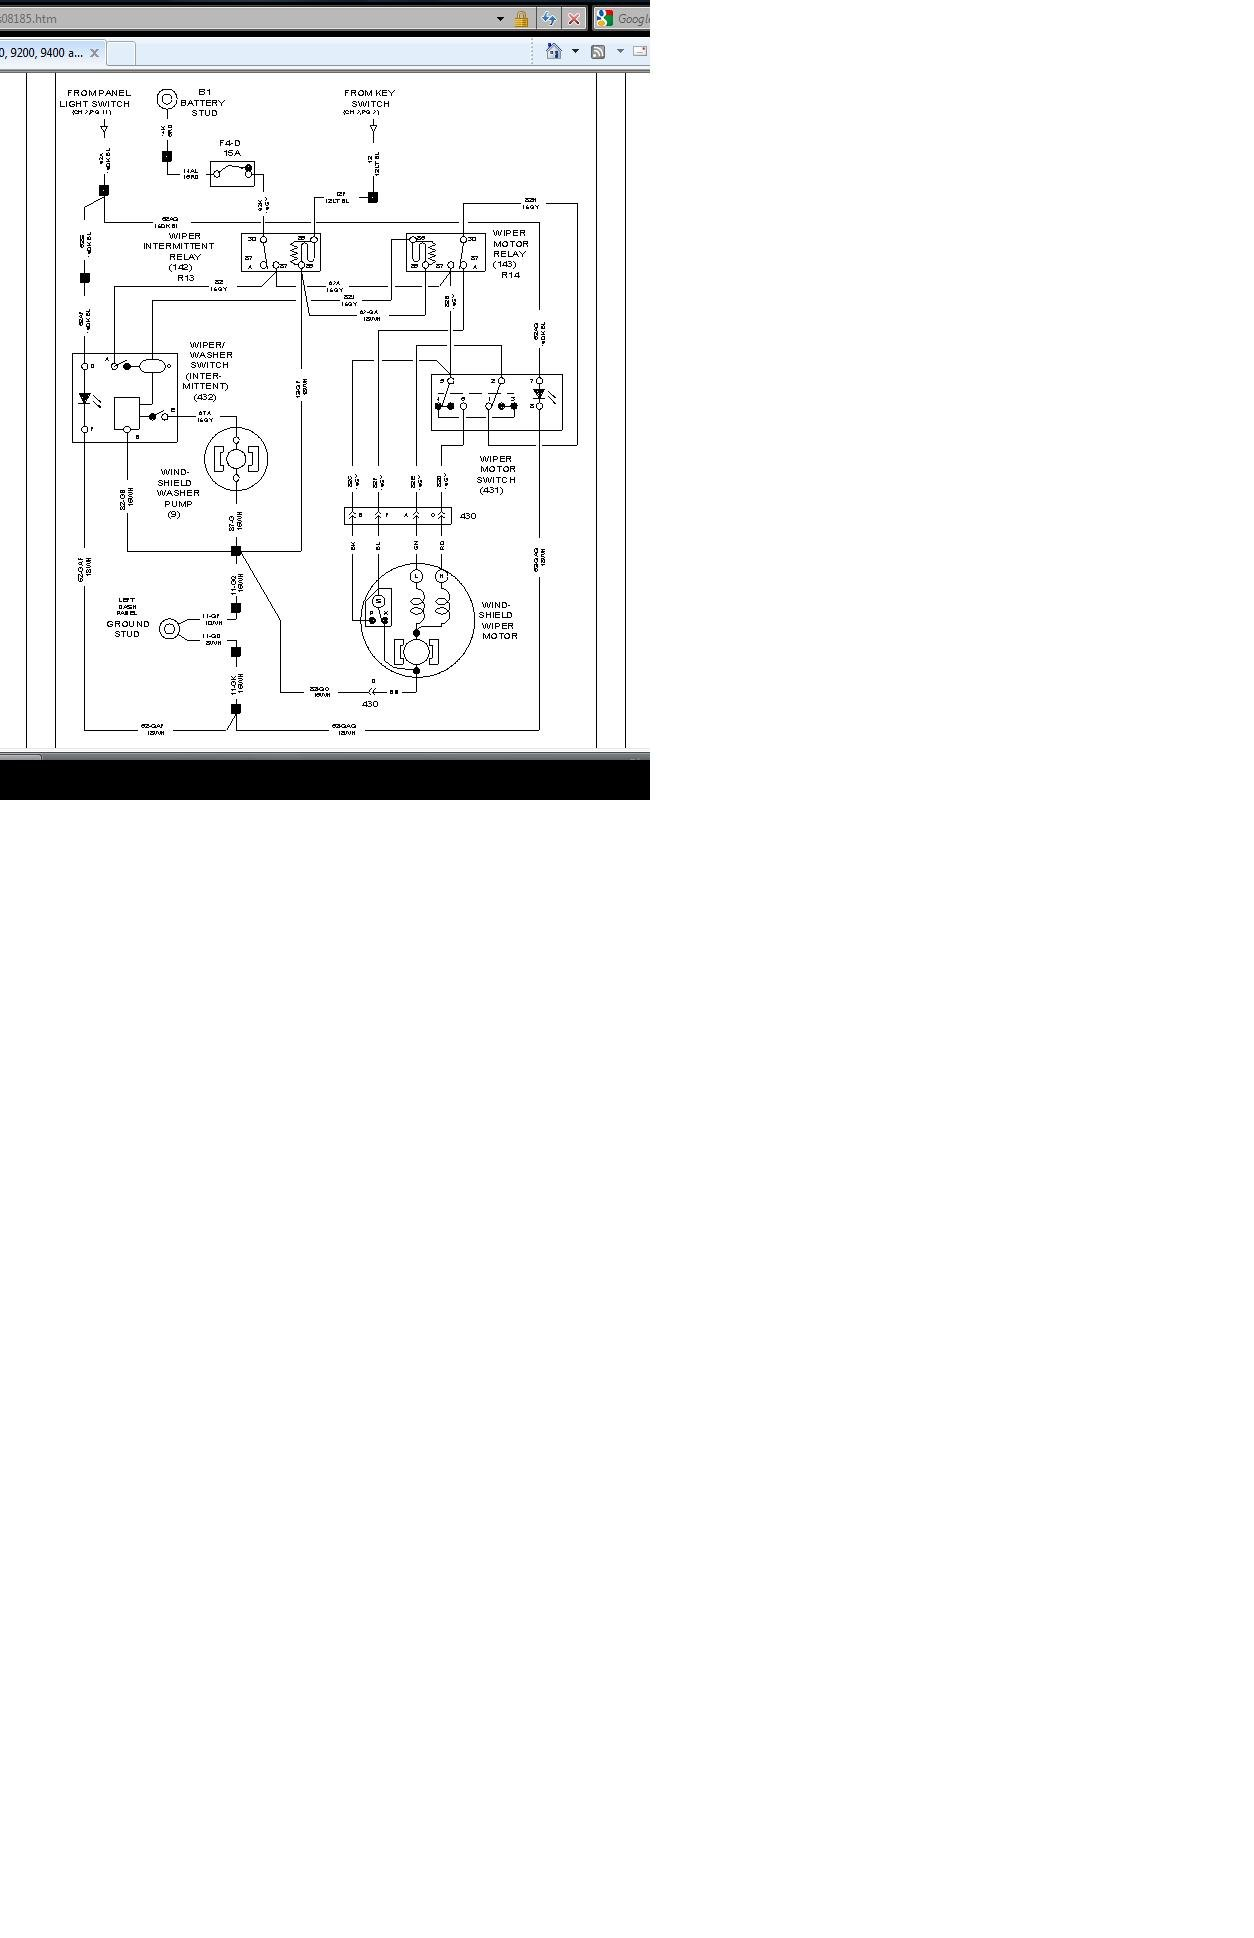 I Need A Wiring Schematic For The Wiper Motor Switch 91 99 Full Size Image